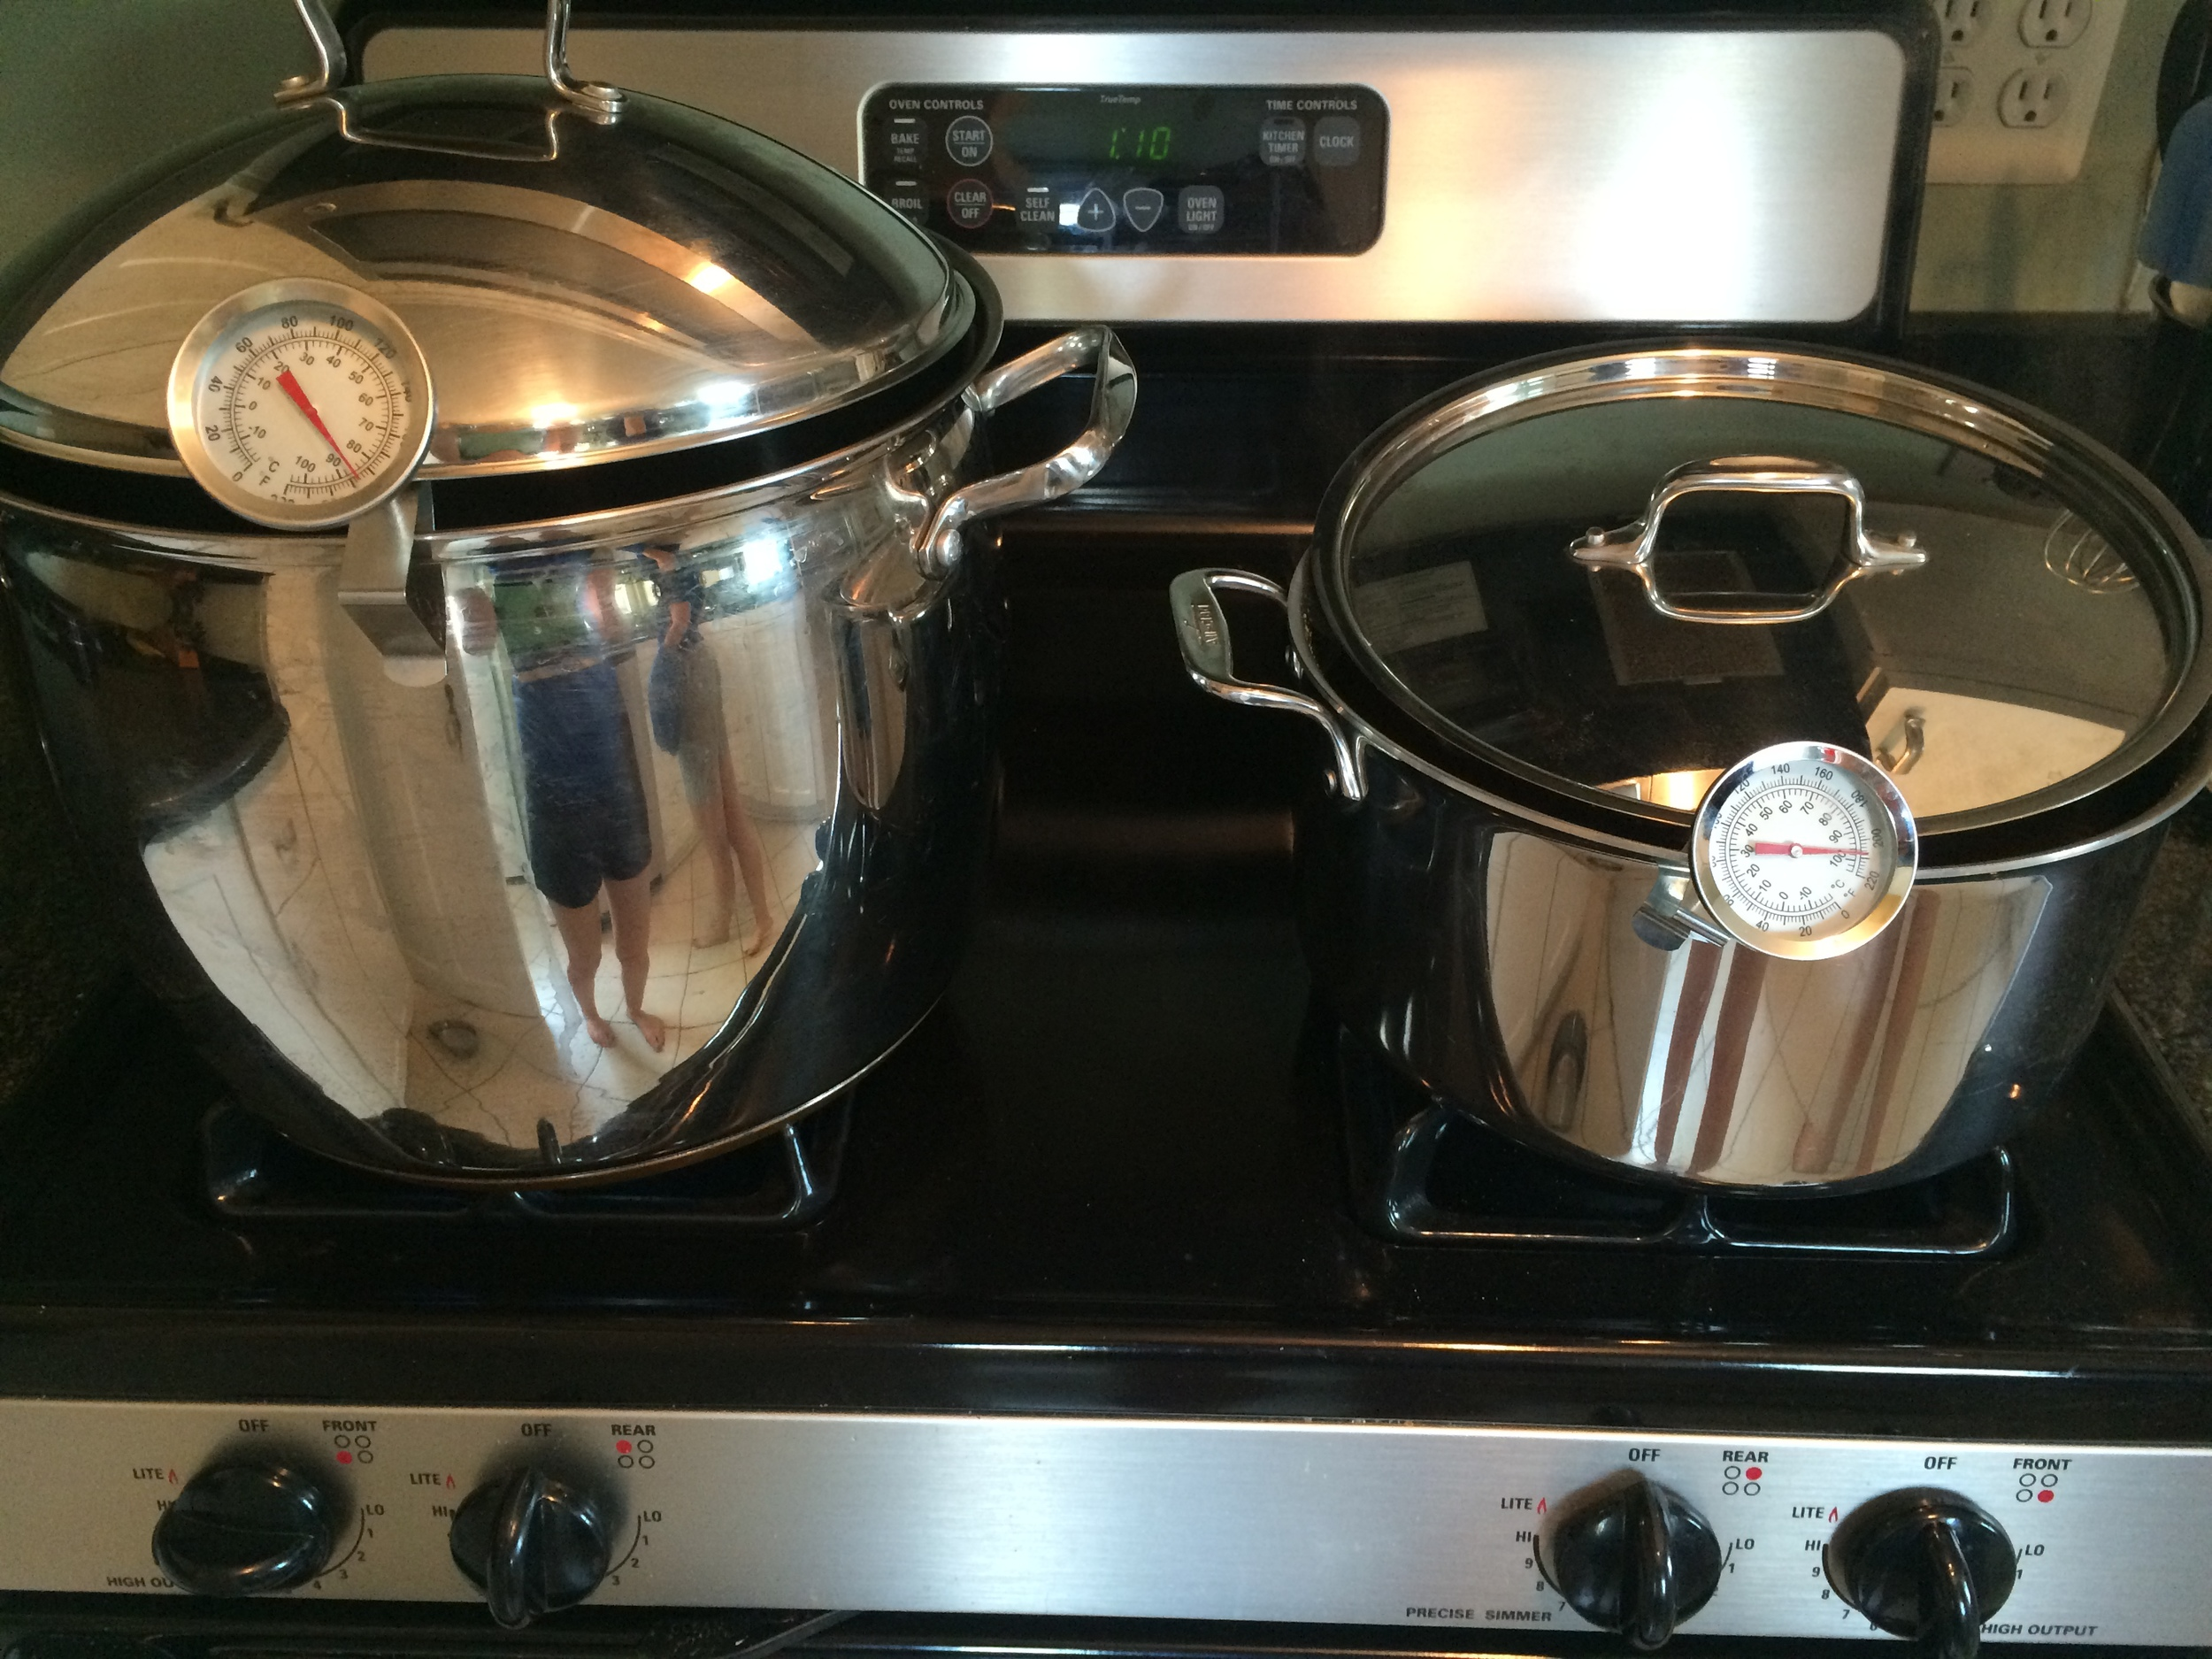 Our twins boiling away